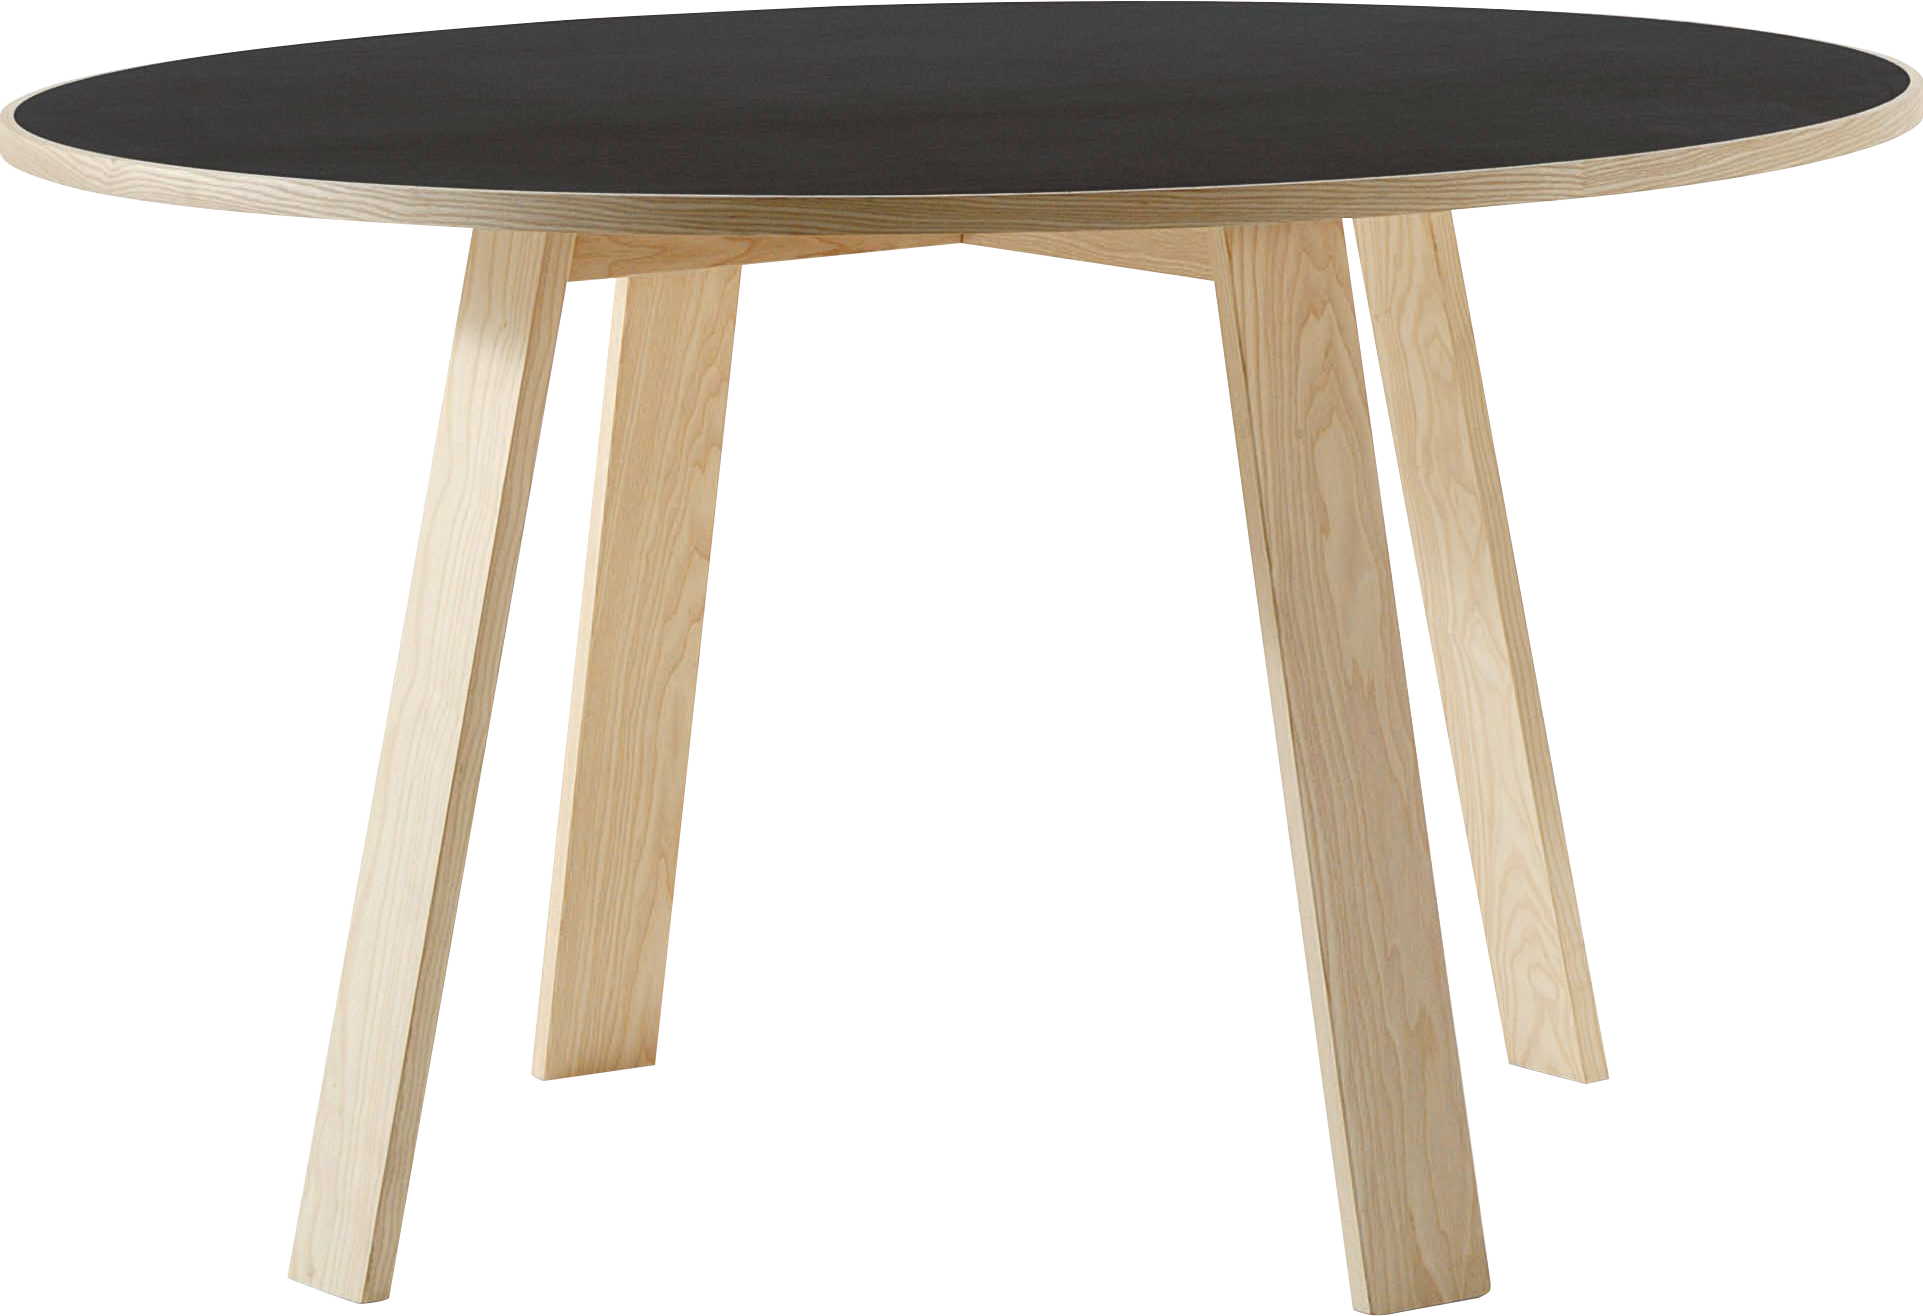 Exceptionnel Modern Black And White Table PNG Image   PurePNG | Free Transparent CC0 PNG  Image Library